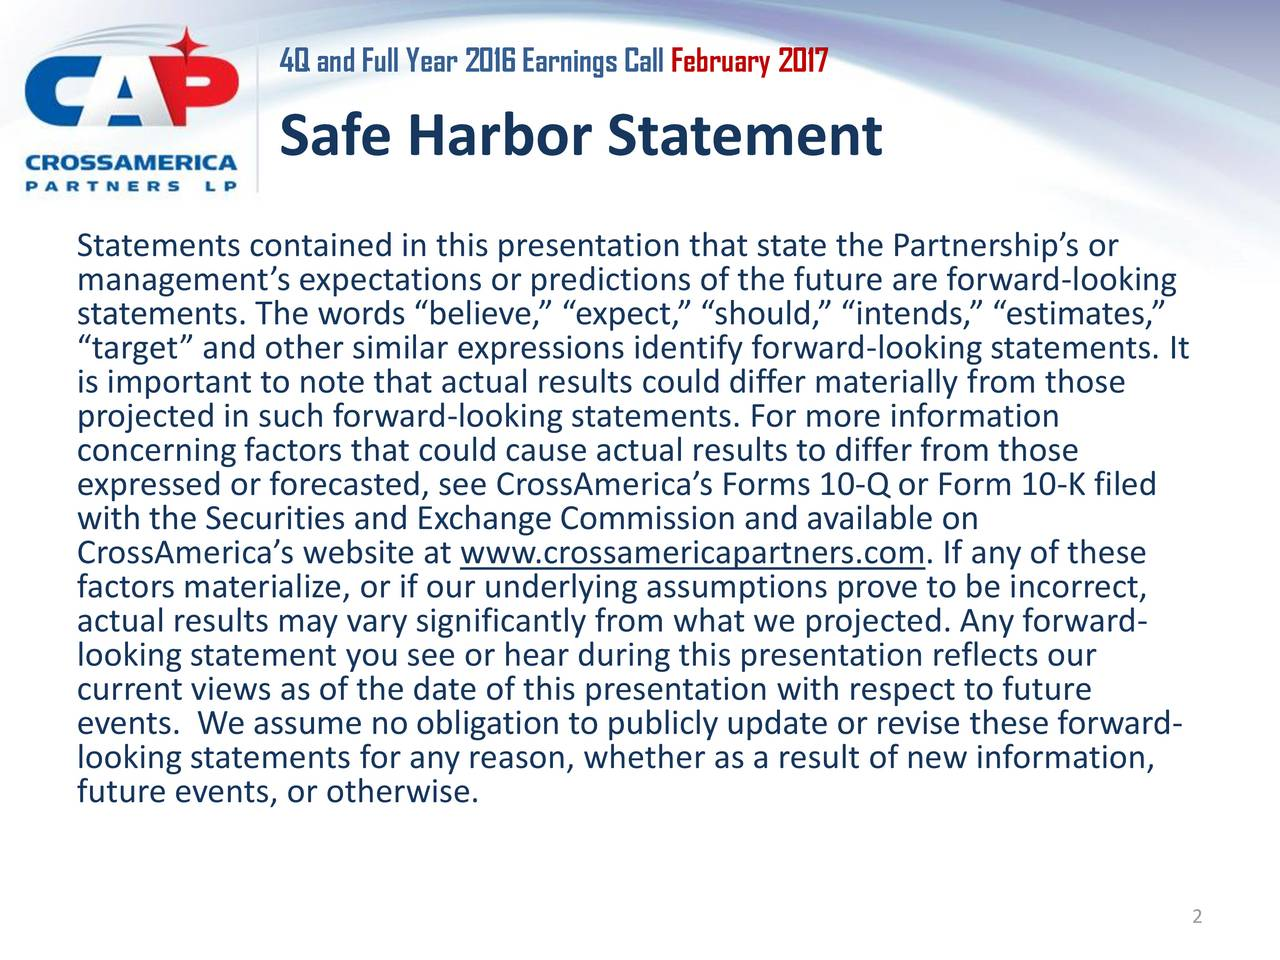 Safe Harbor Statement Statements contained in this presentation that state the Partnerships or managements expectations or predictions of the future are forward-looking statements. The words believe, expect, should, intends, estimates, target and other similar expressions identify forward-looking statements. It is important to note that actual results could differ materially from those concerning factors that could cause actual results to differ from those expressed or forecasted, see CrossAmericas Forms 10-Q or Form 10-K filed with the Securities and Exchange Commission and available on CrossAmericas website at www.crossamericapartners.com. If any of these factors materialize, or if our underlying assumptions prove to be incorrect, actual results may vary significantly from what we projected. Any forward- looking statement you see or hear during this presentation reflects our current views as of the date of this presentation with respect to future events. We assume no obligation to publicly update or revise these forward- looking statements for any reason, whether as a result of new information, future events, or otherwise. 2